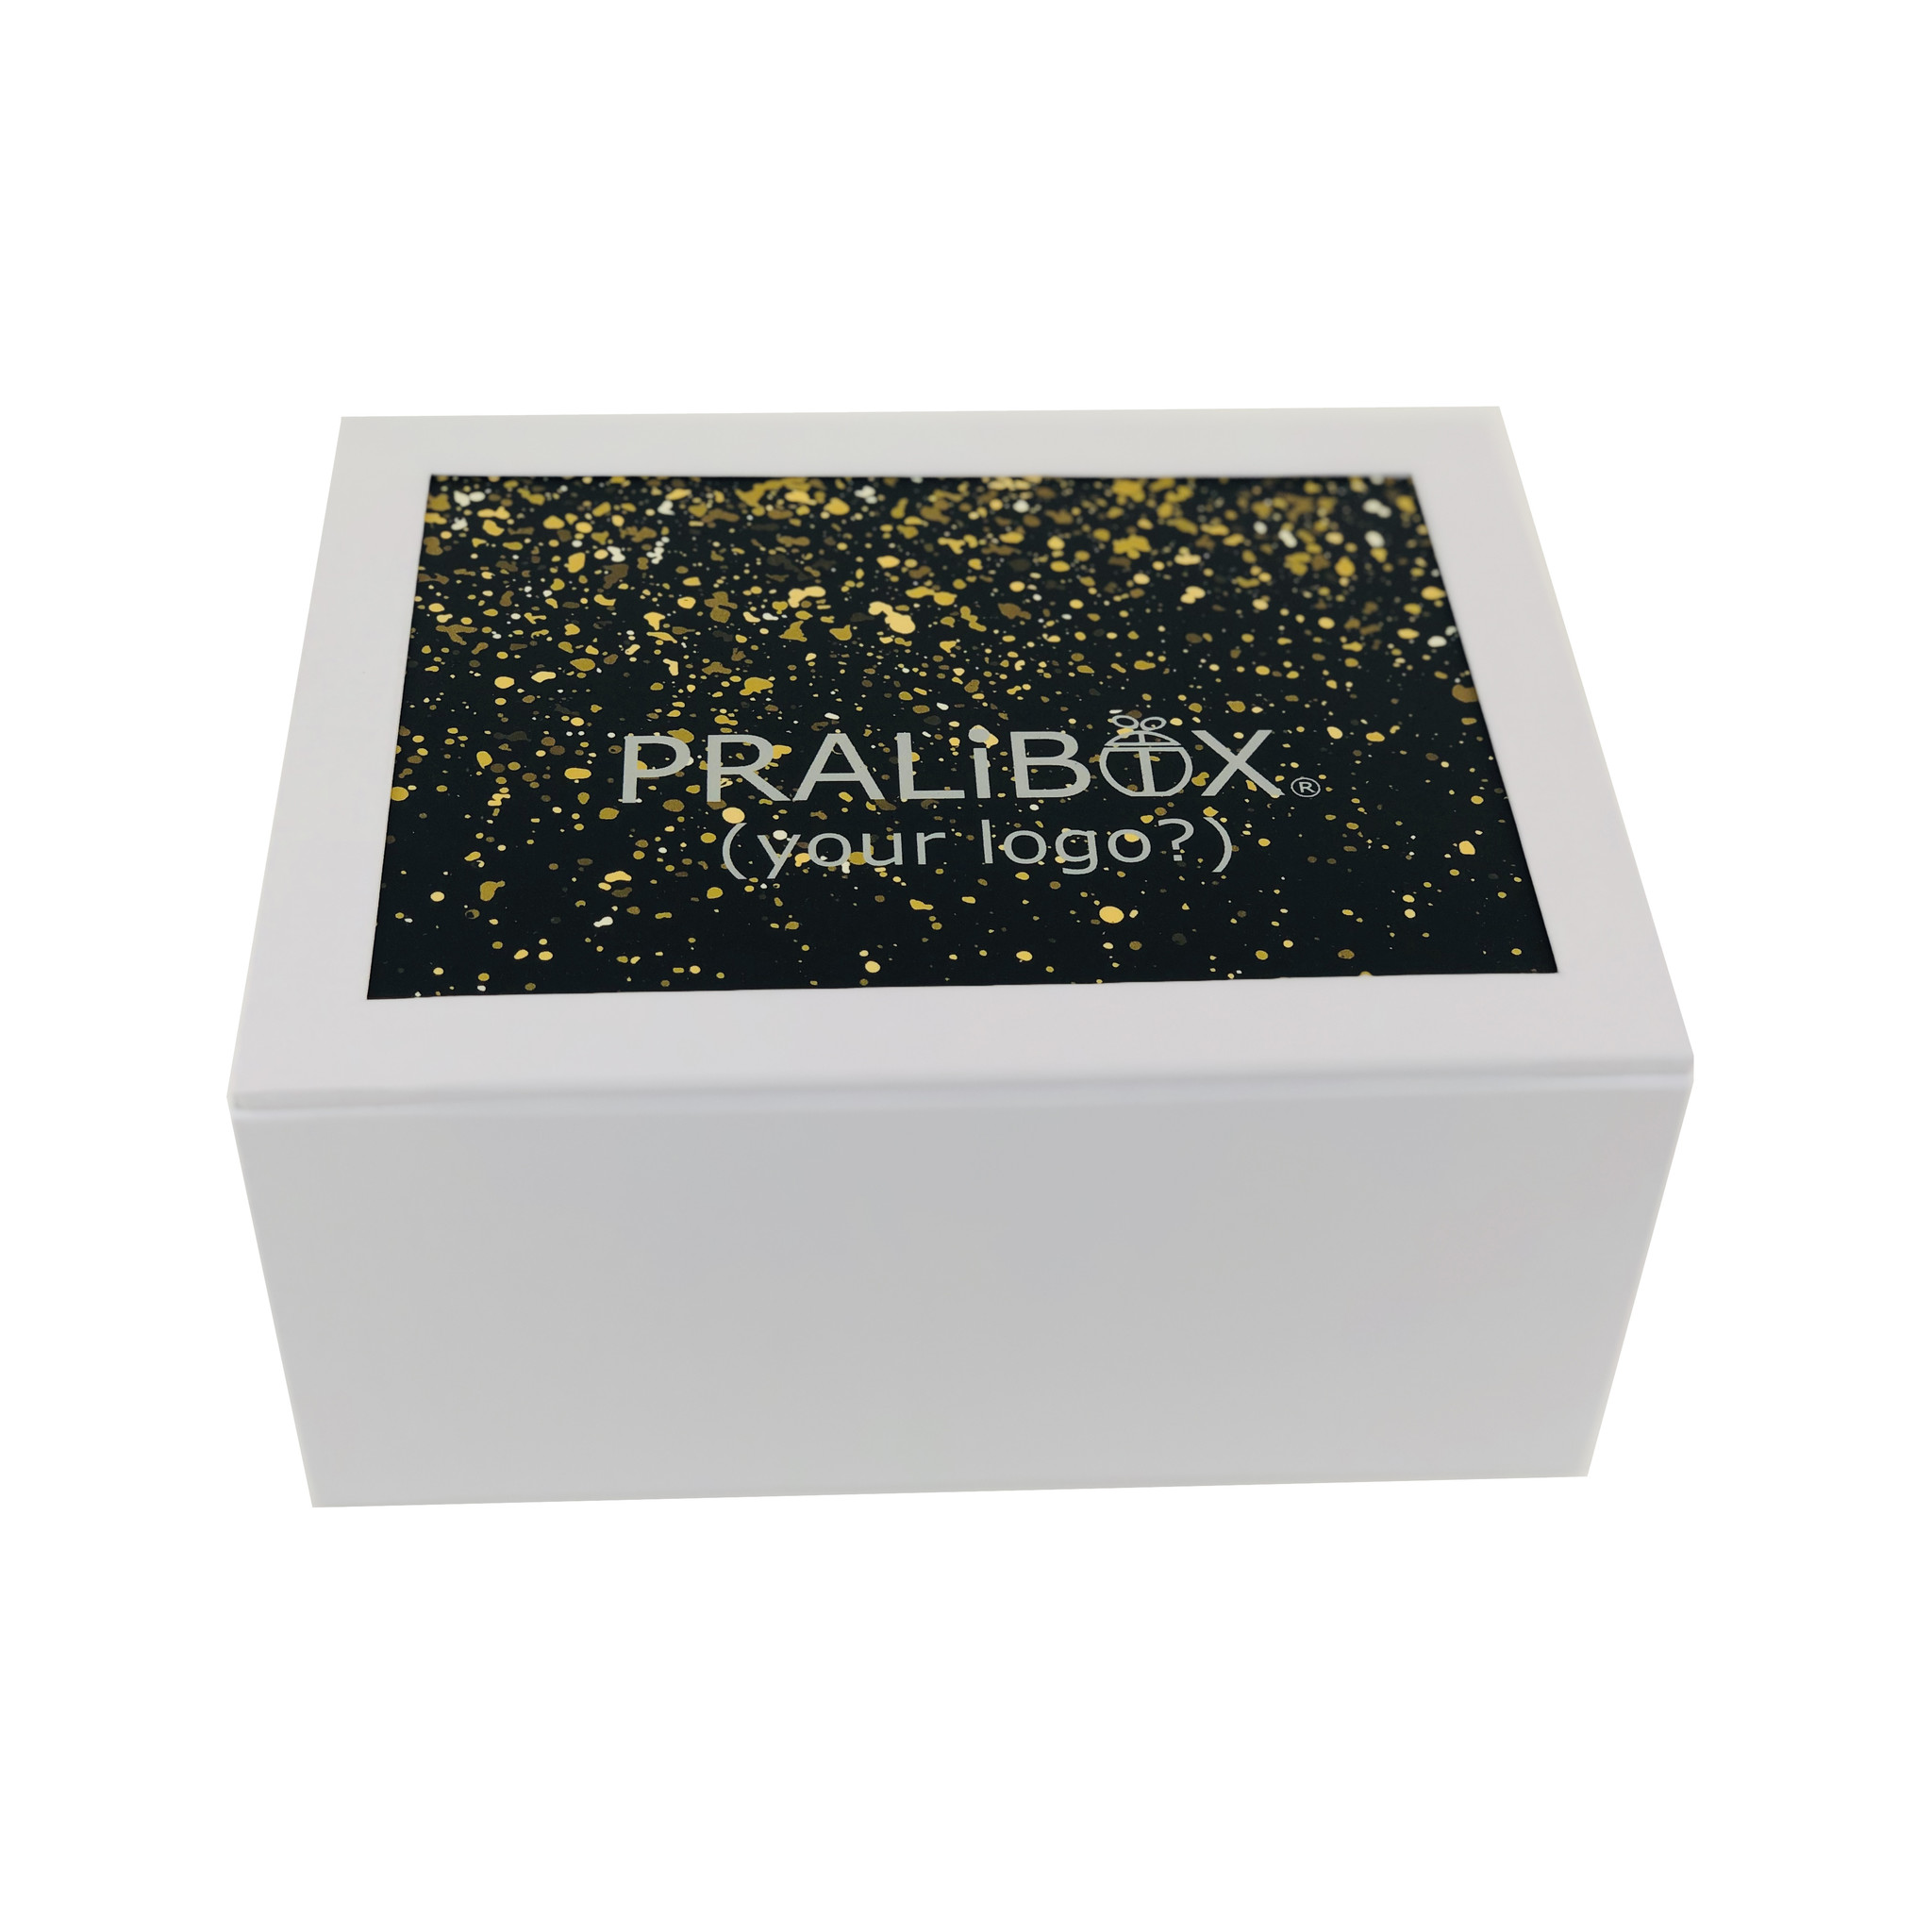 Tailormade giftbox 240*190*106mm